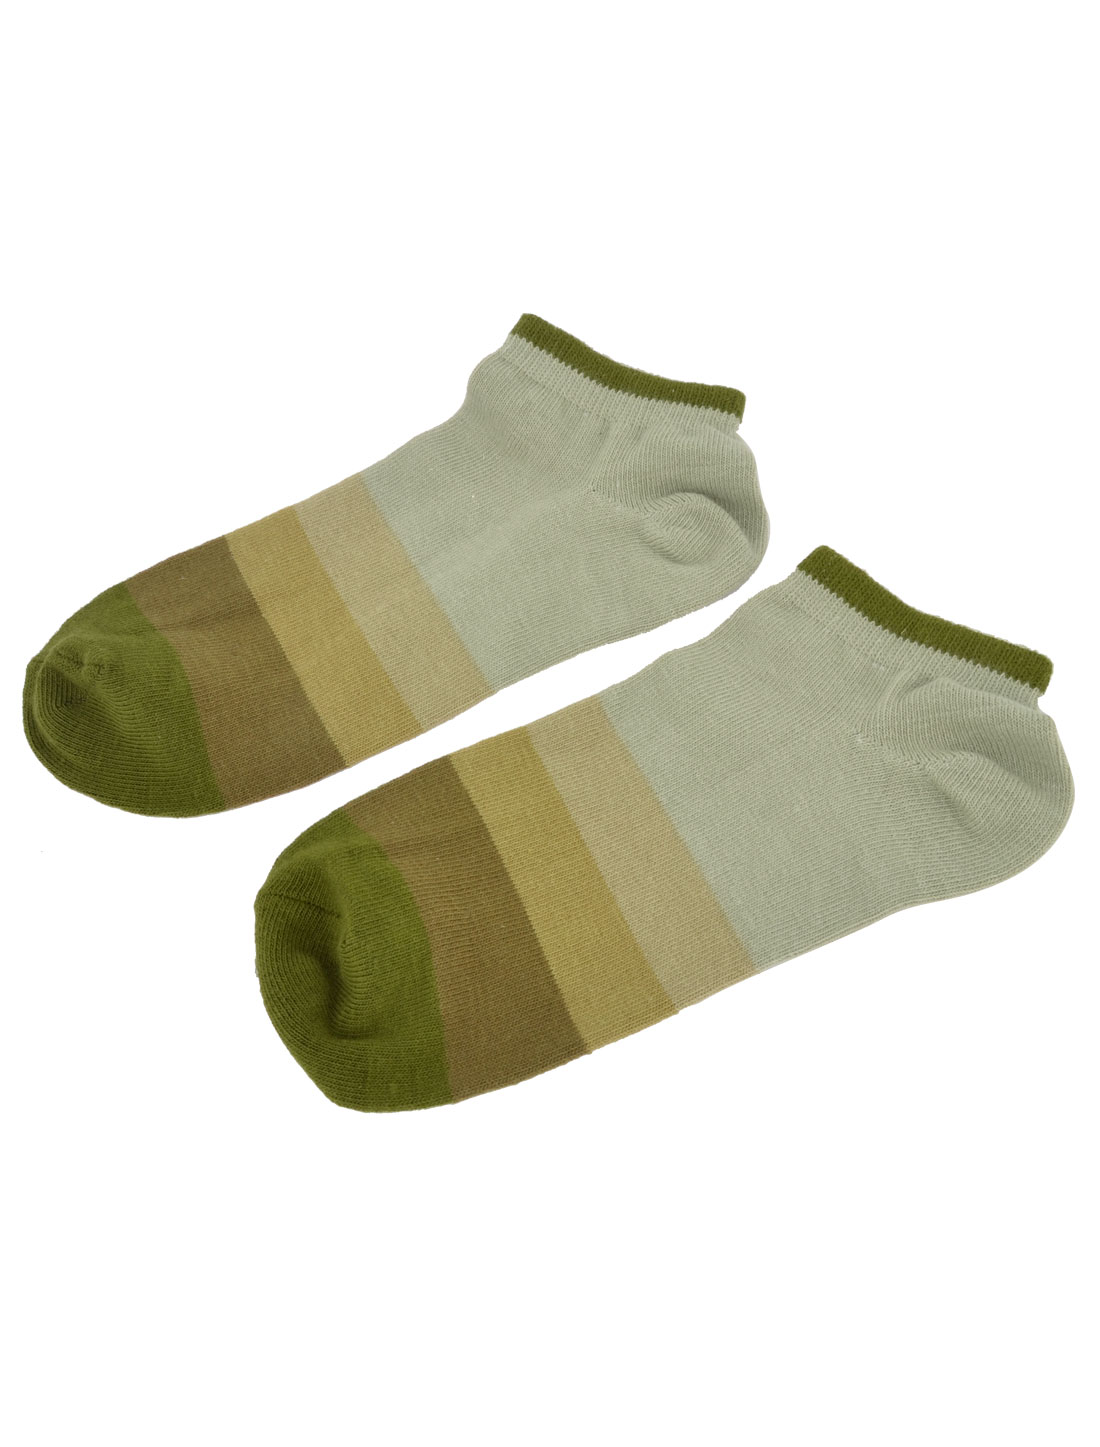 Pair Stretchy Cuff Ankle Low Cut Olive Green Gradient Socks Sockings for Unisex